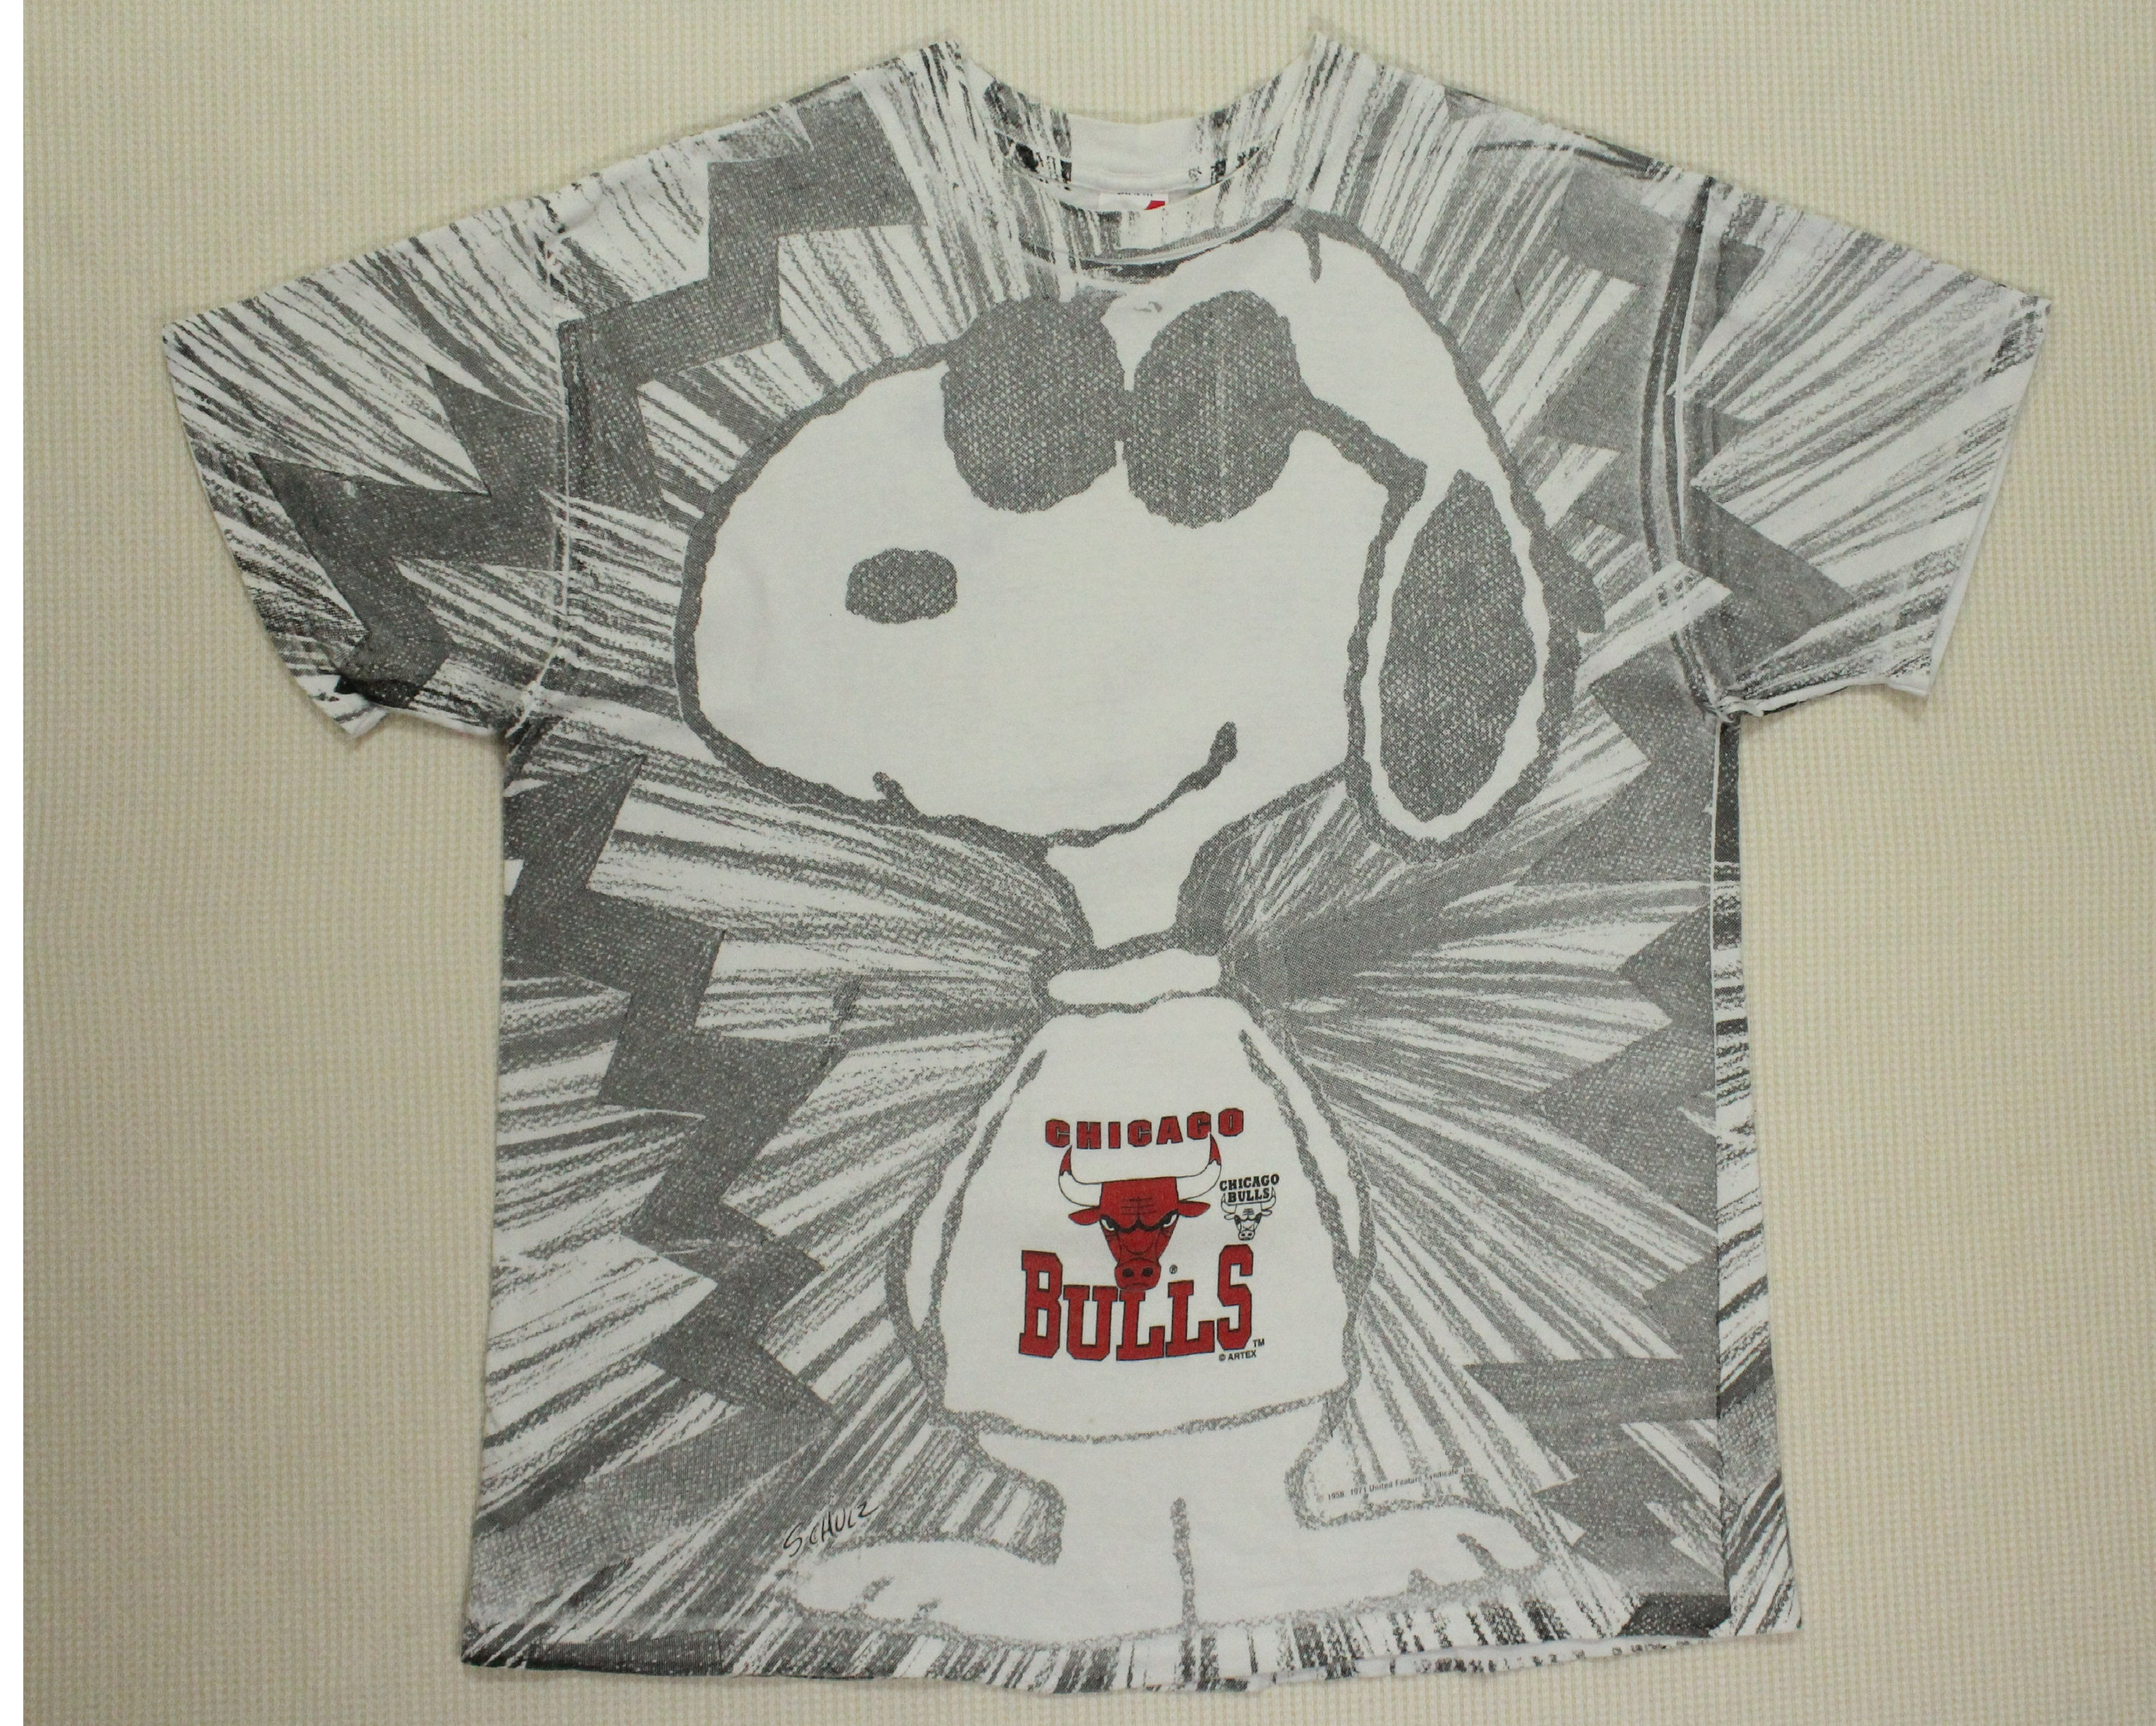 Bulls Printed Full T Chicago Grunge X Distressed Snoopy Shirt Vintage kXTlOZiuwP